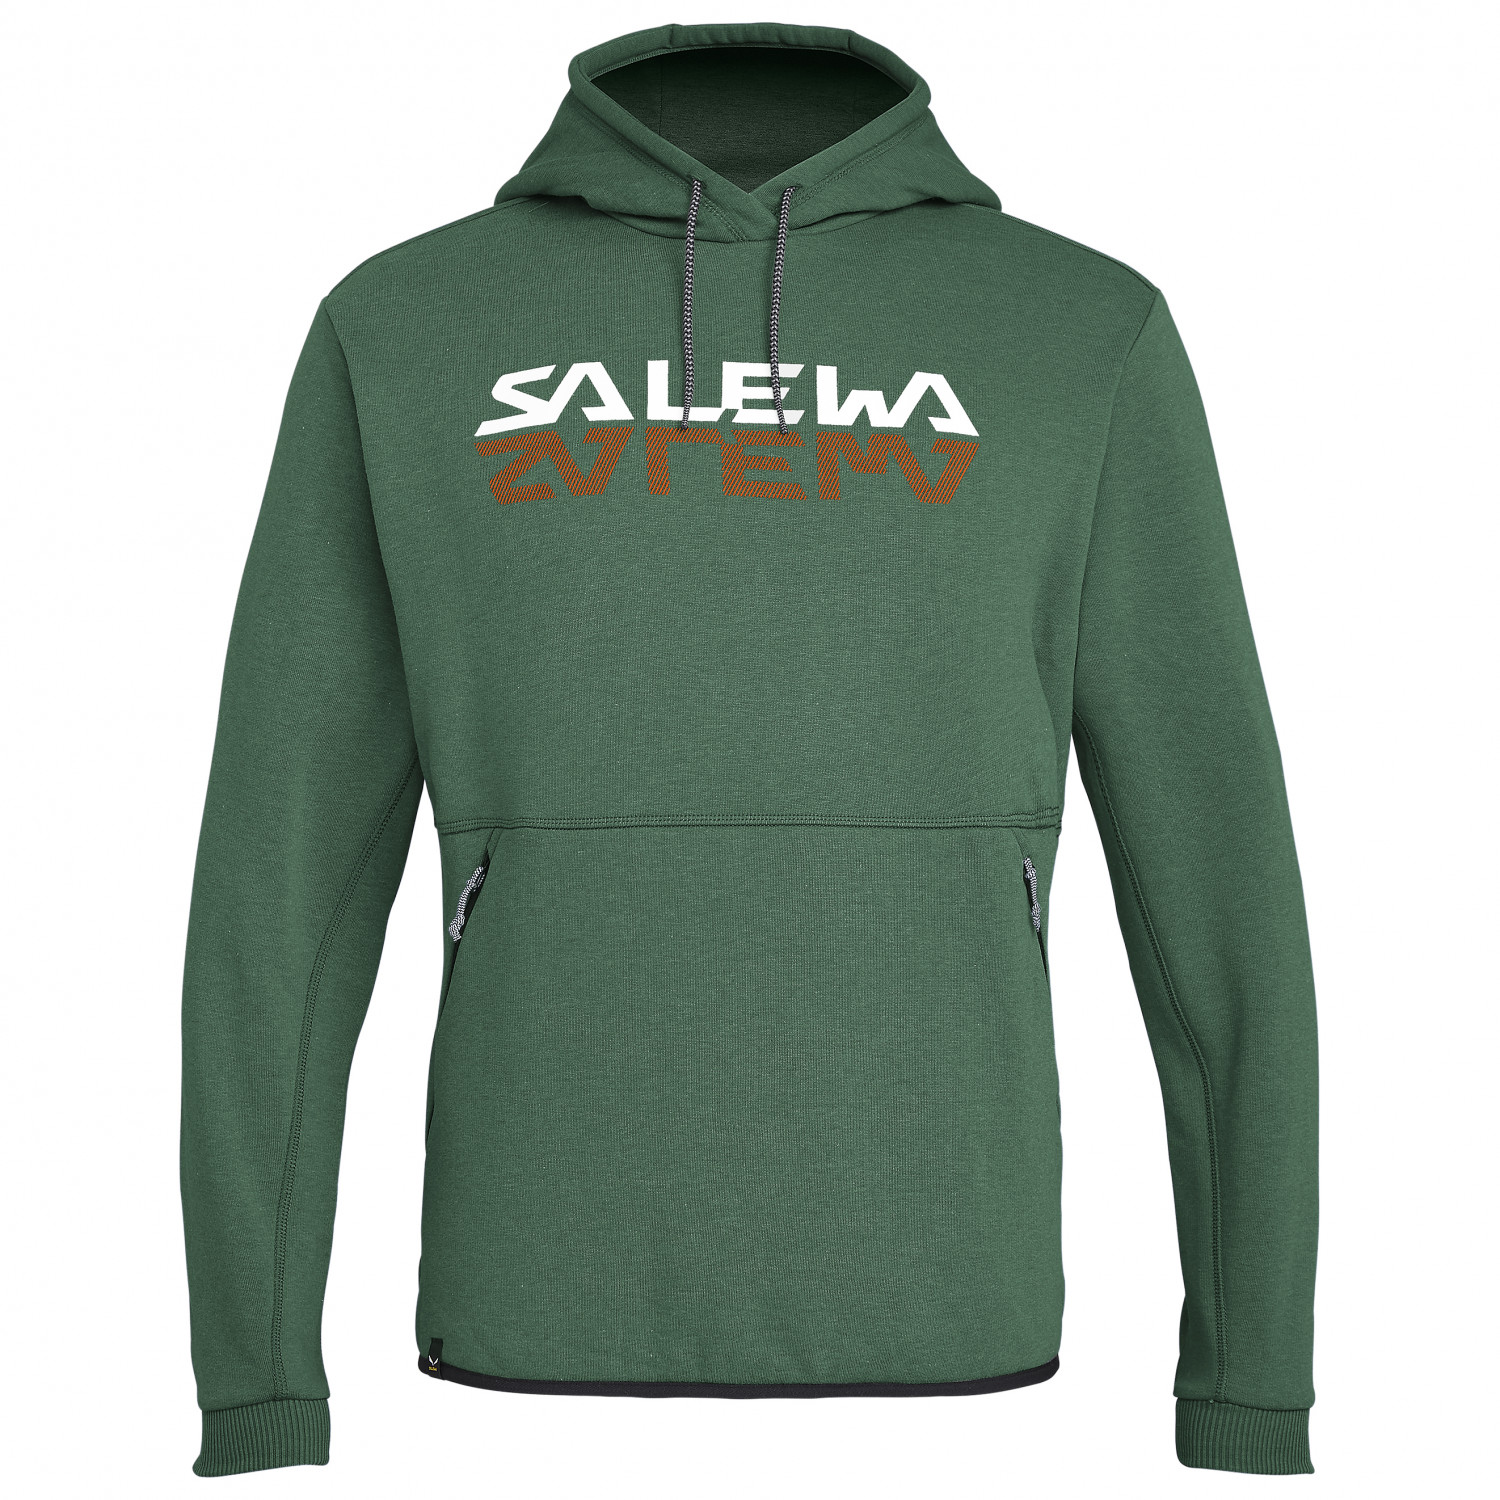 Salewa Reflection Dry Hoody Hoodie Grey Melange | 46 (EU)